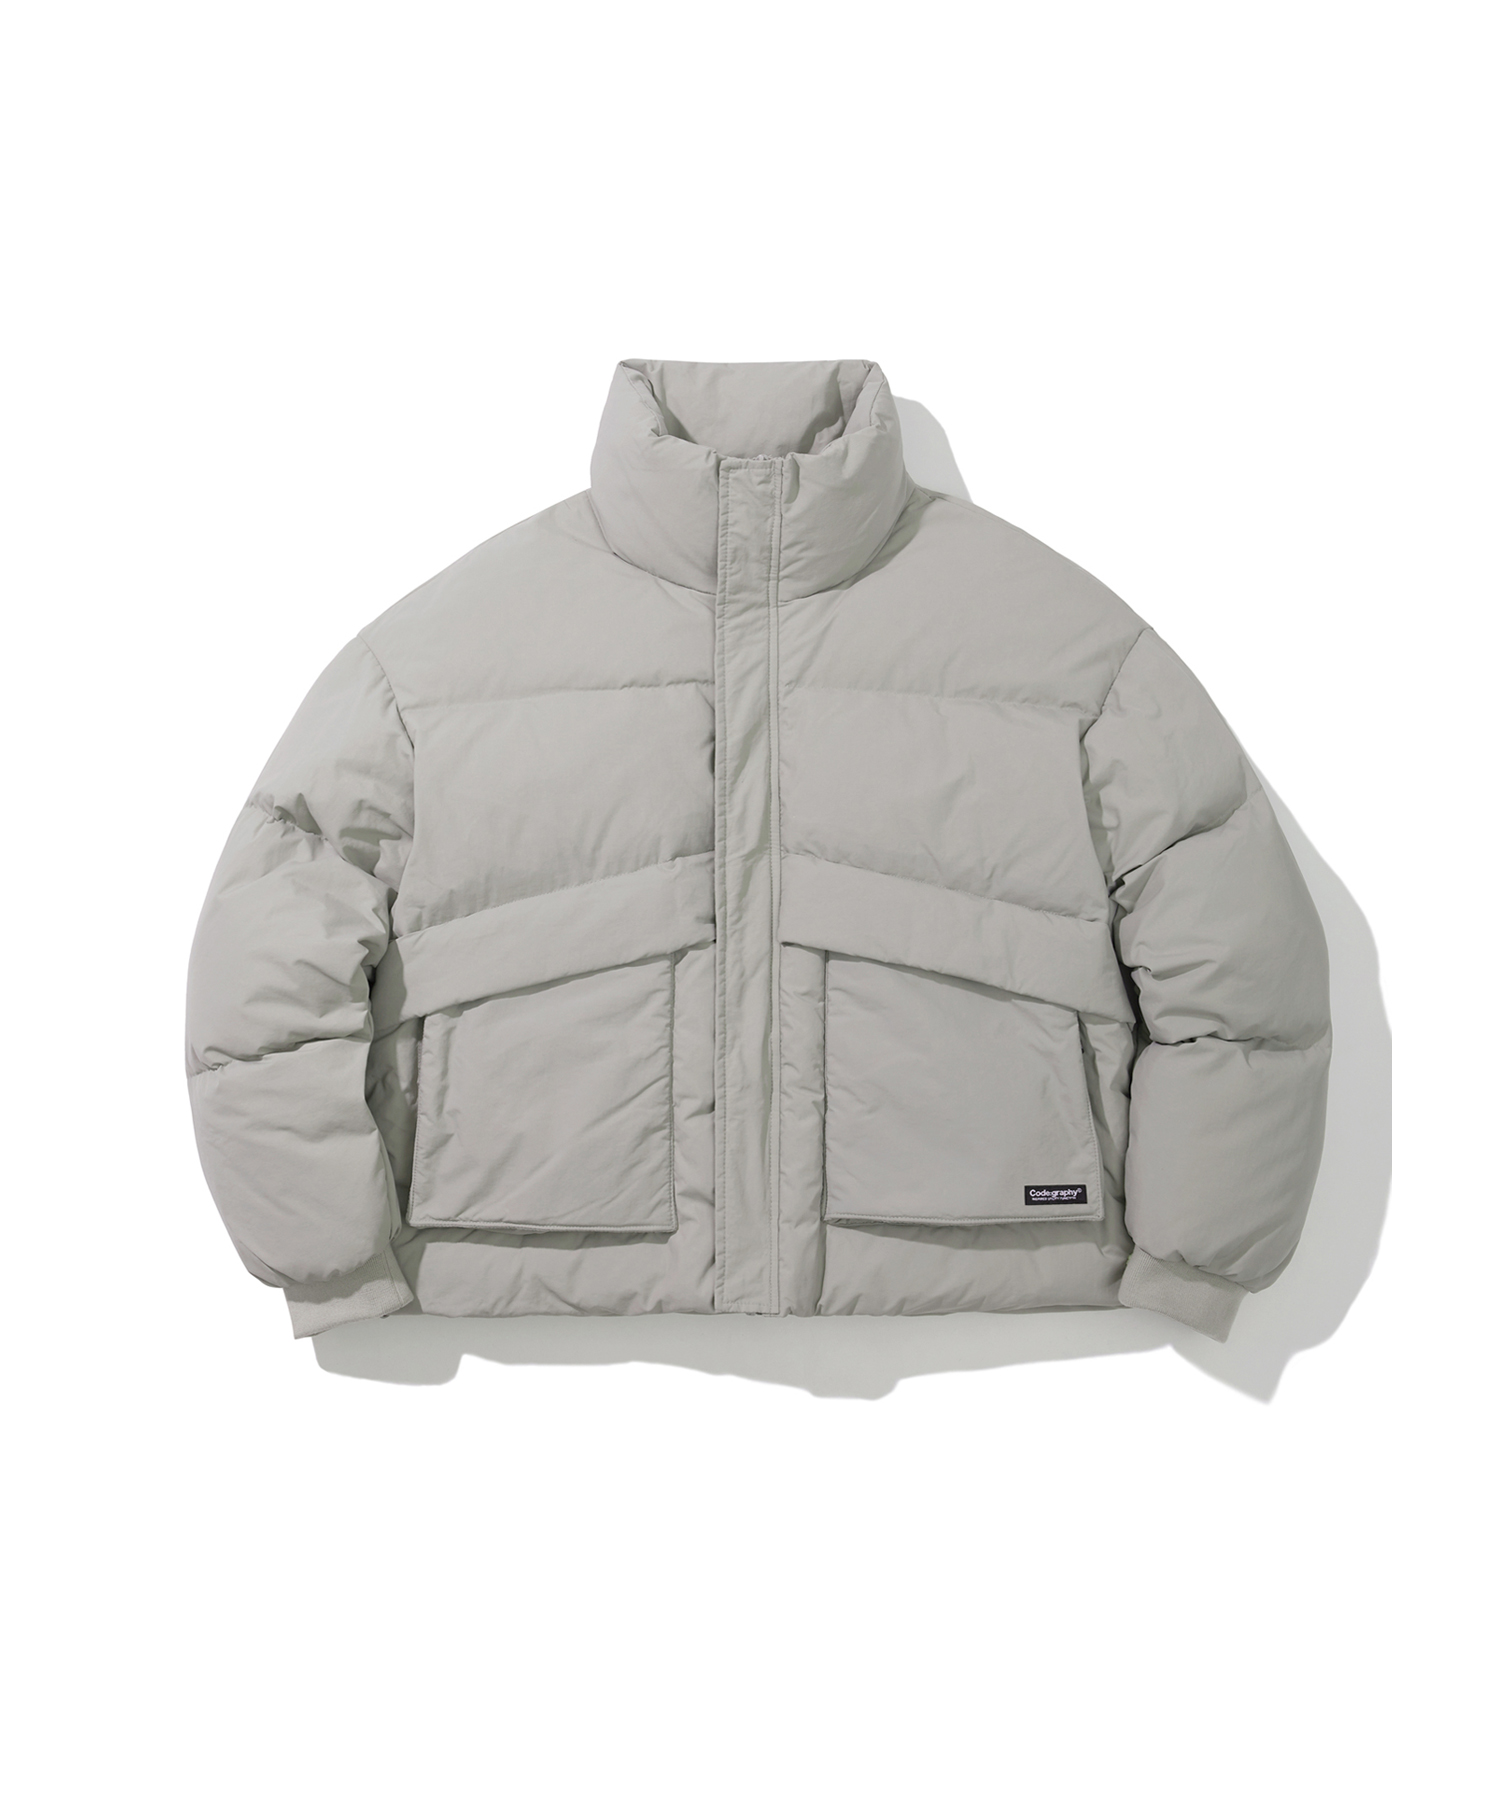 [Renewal]UTILITY DUCK DOWN SHORT PUFFA - LGR